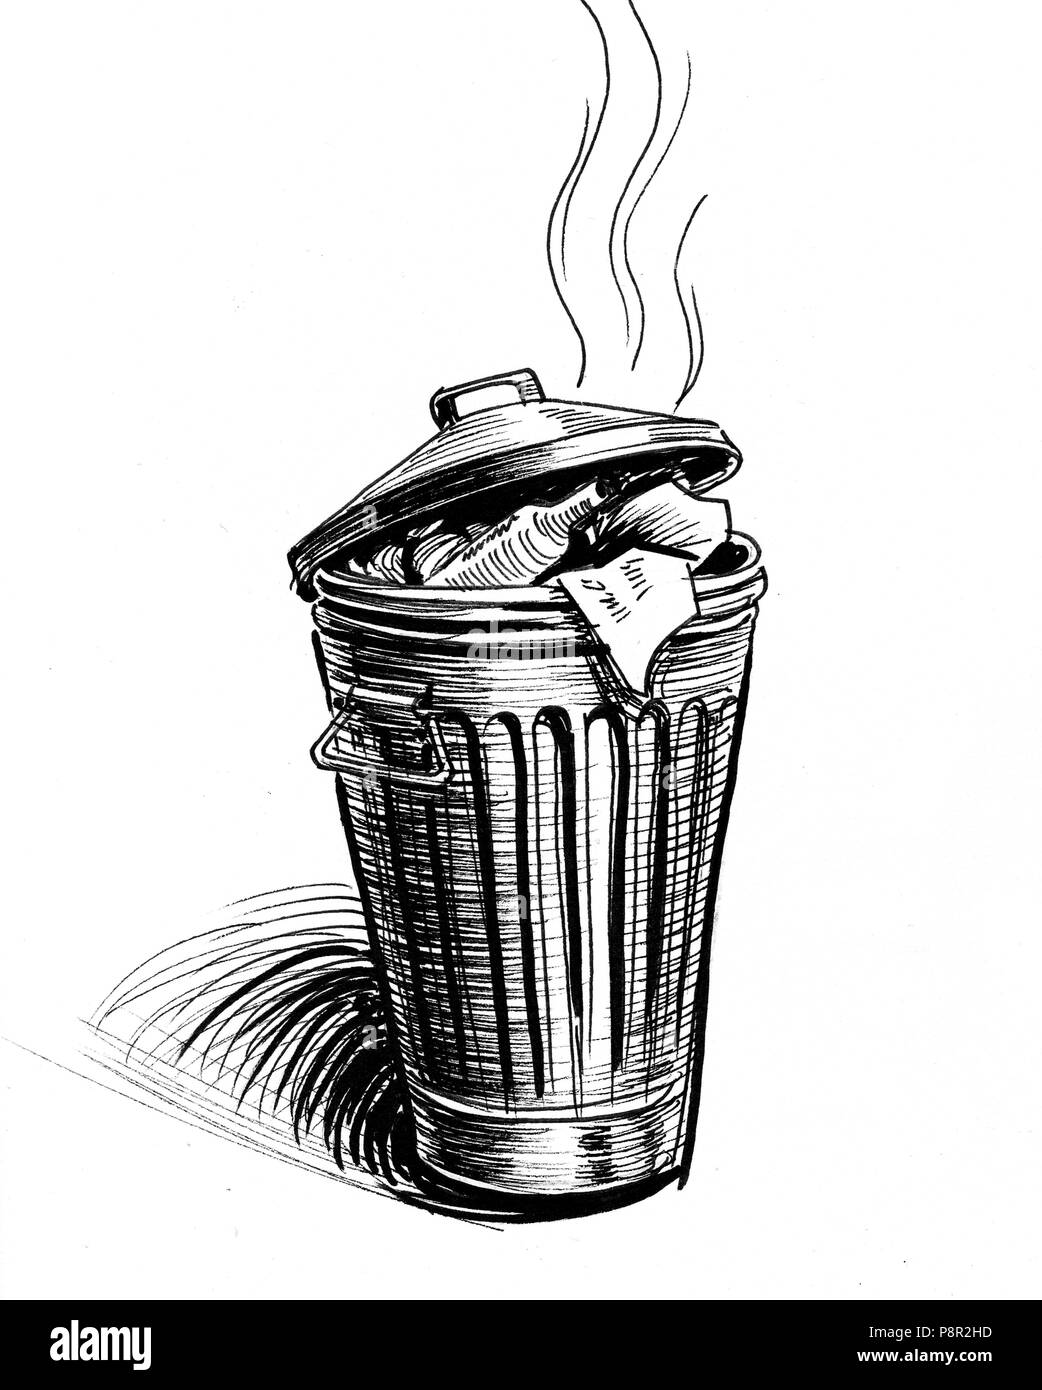 Stinky trash can. Ink black and white illustration - Stock Image